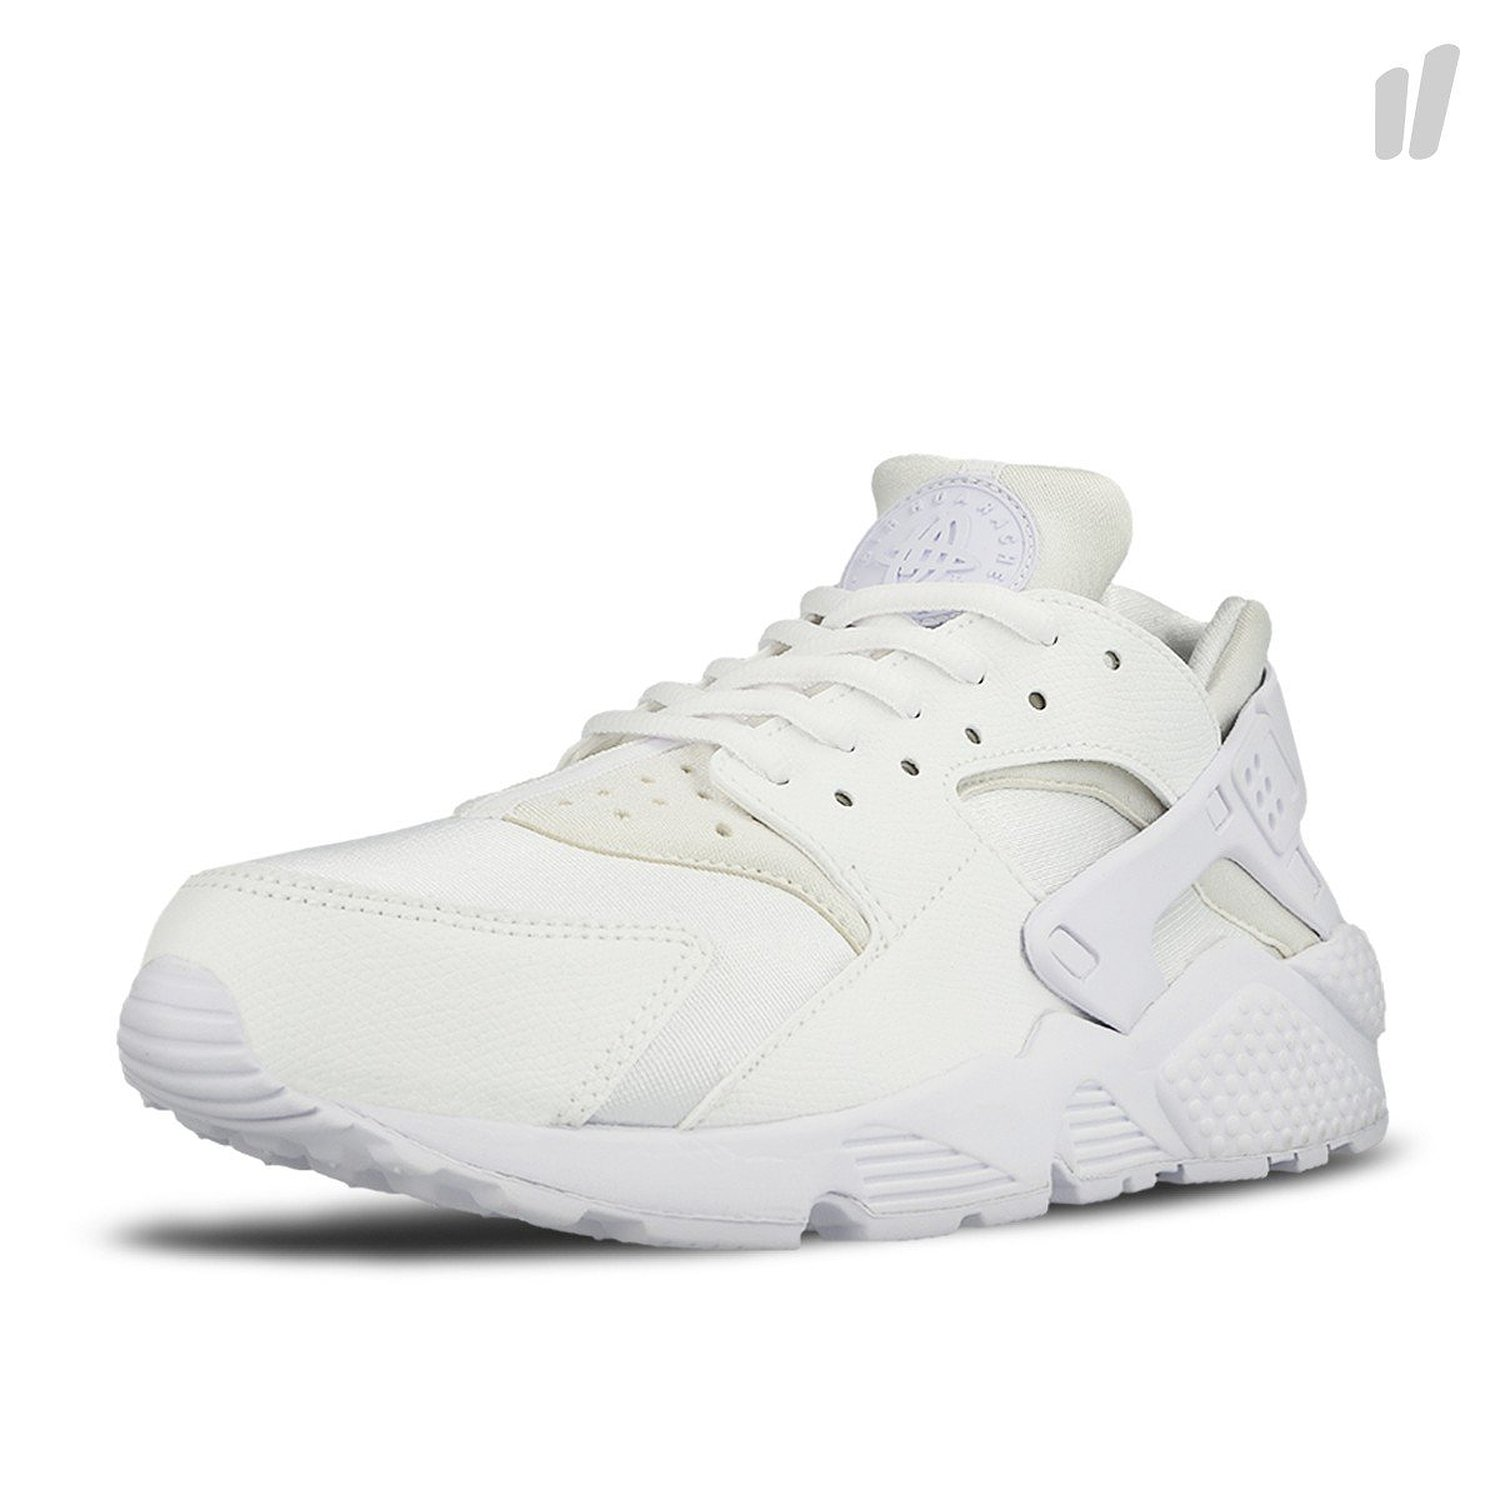 huge selection of ef2a1 090df Get Quotations · NIKE AIR HUARACHE White White 634835-108 WOMEN S SHOE 6.5